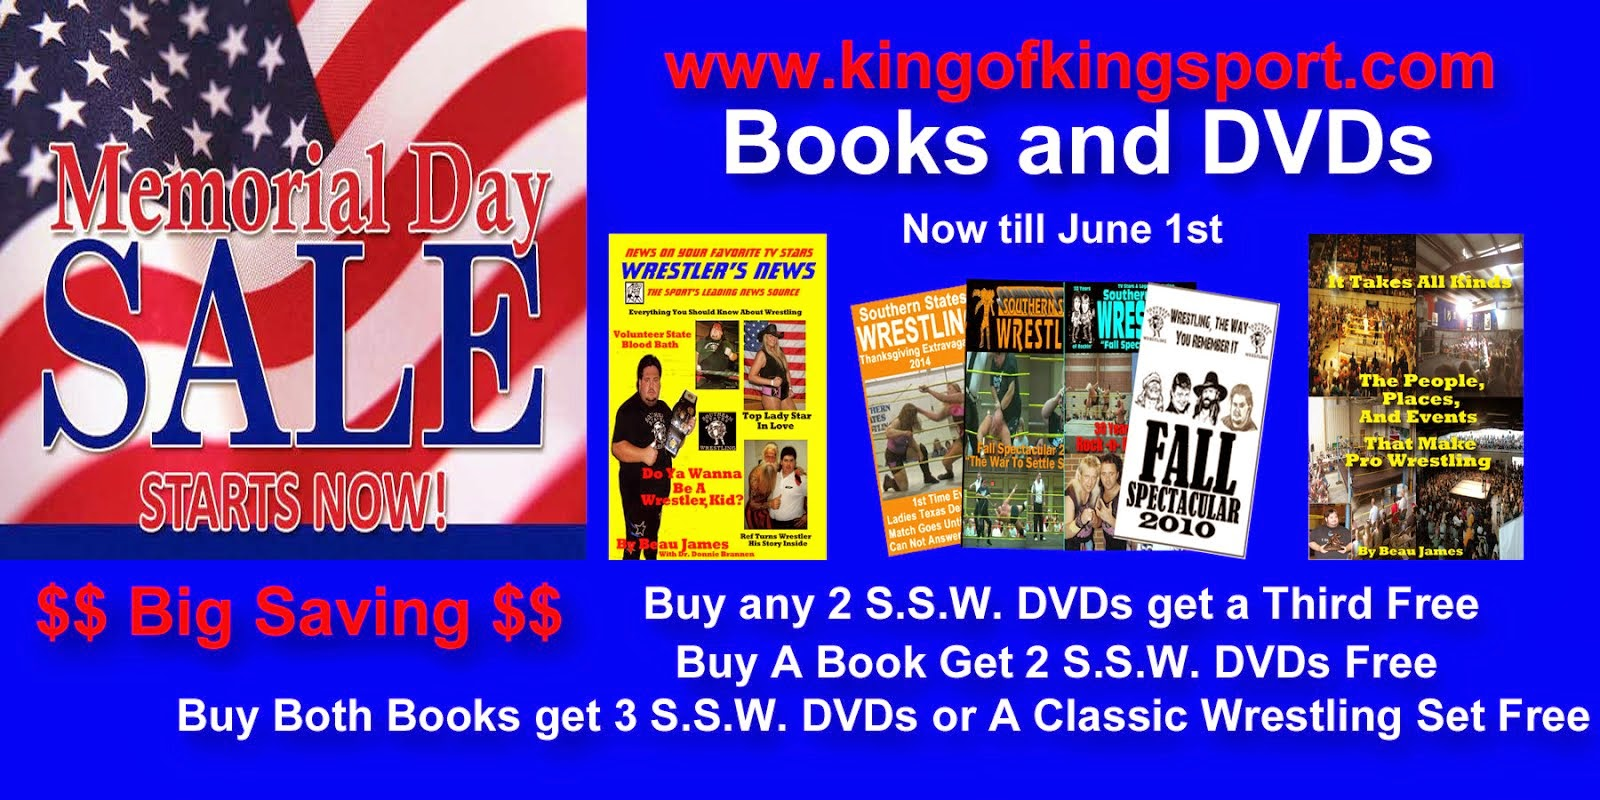 3rd Annual Memorial Day Sale - Books and DVDs with Big Savings